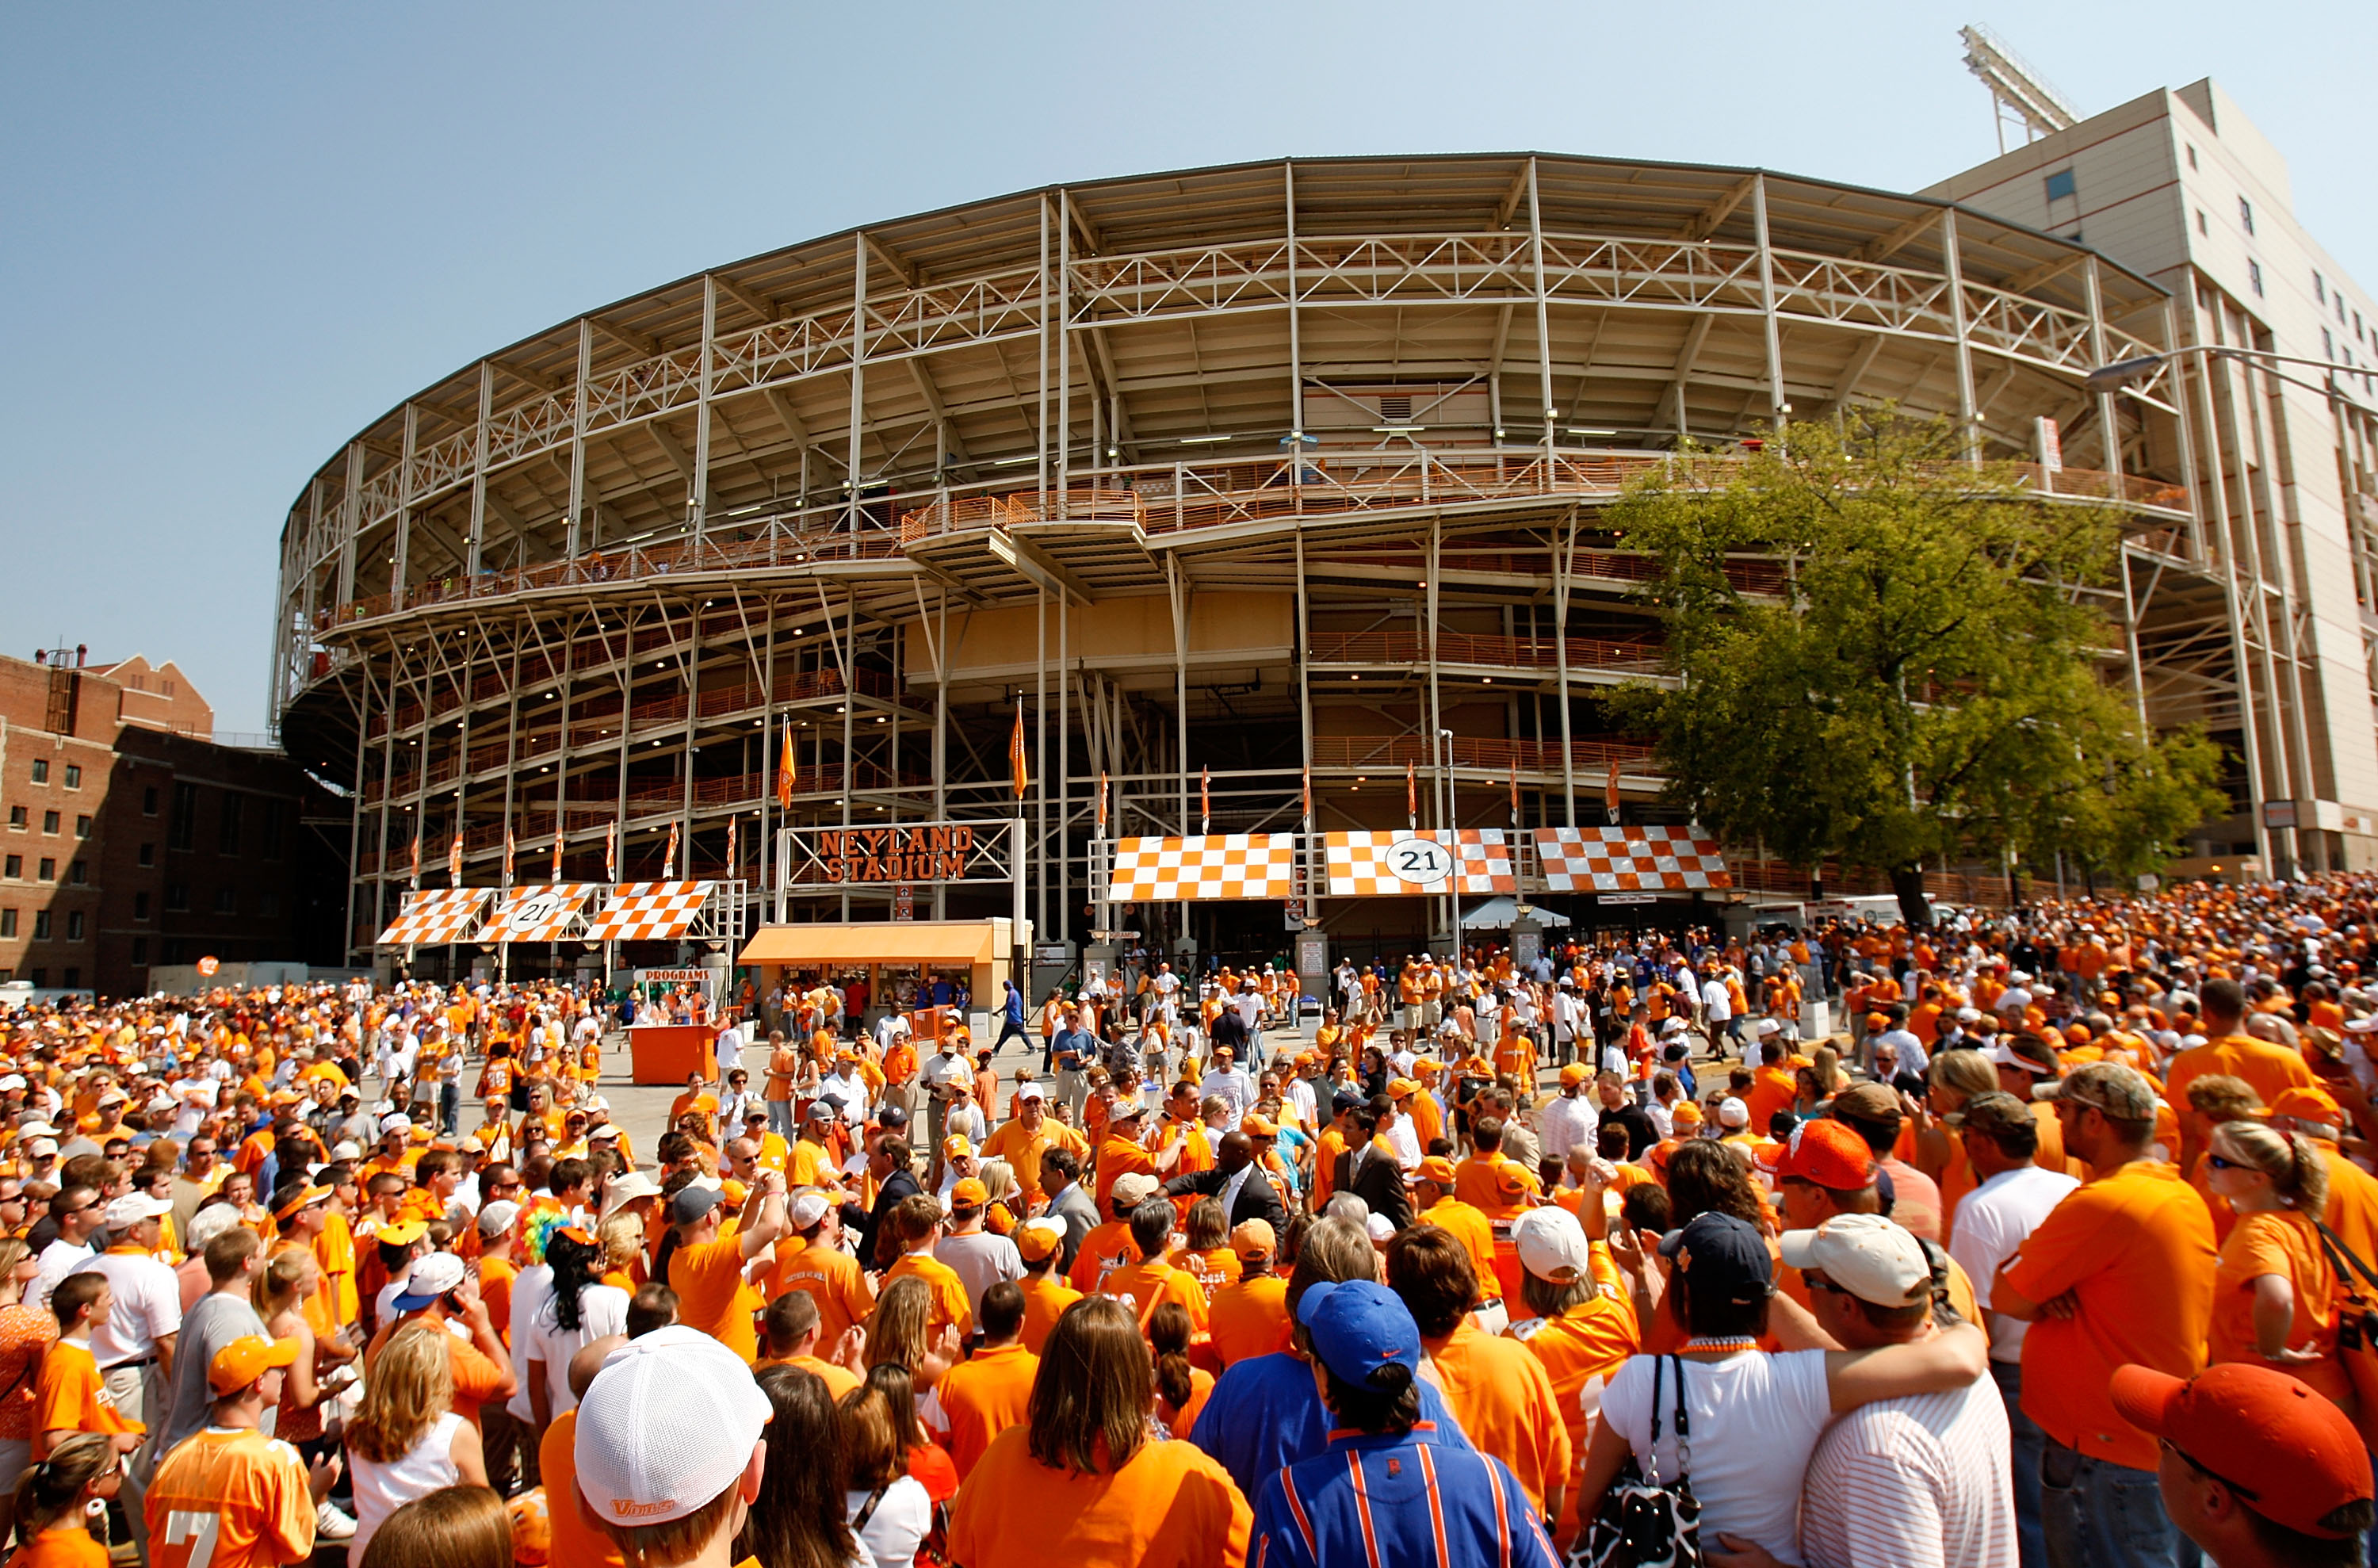 KNOXVILLE, TN - SEPTEMBER 20:  Fans watch on as the Tennessee Volunteers make their way through the crowd during the Vol Walk before the start of their game against the Florida Gators on September 20, 2008 at Neyland Stadium in Knoxville, Tennessee.  (Pho